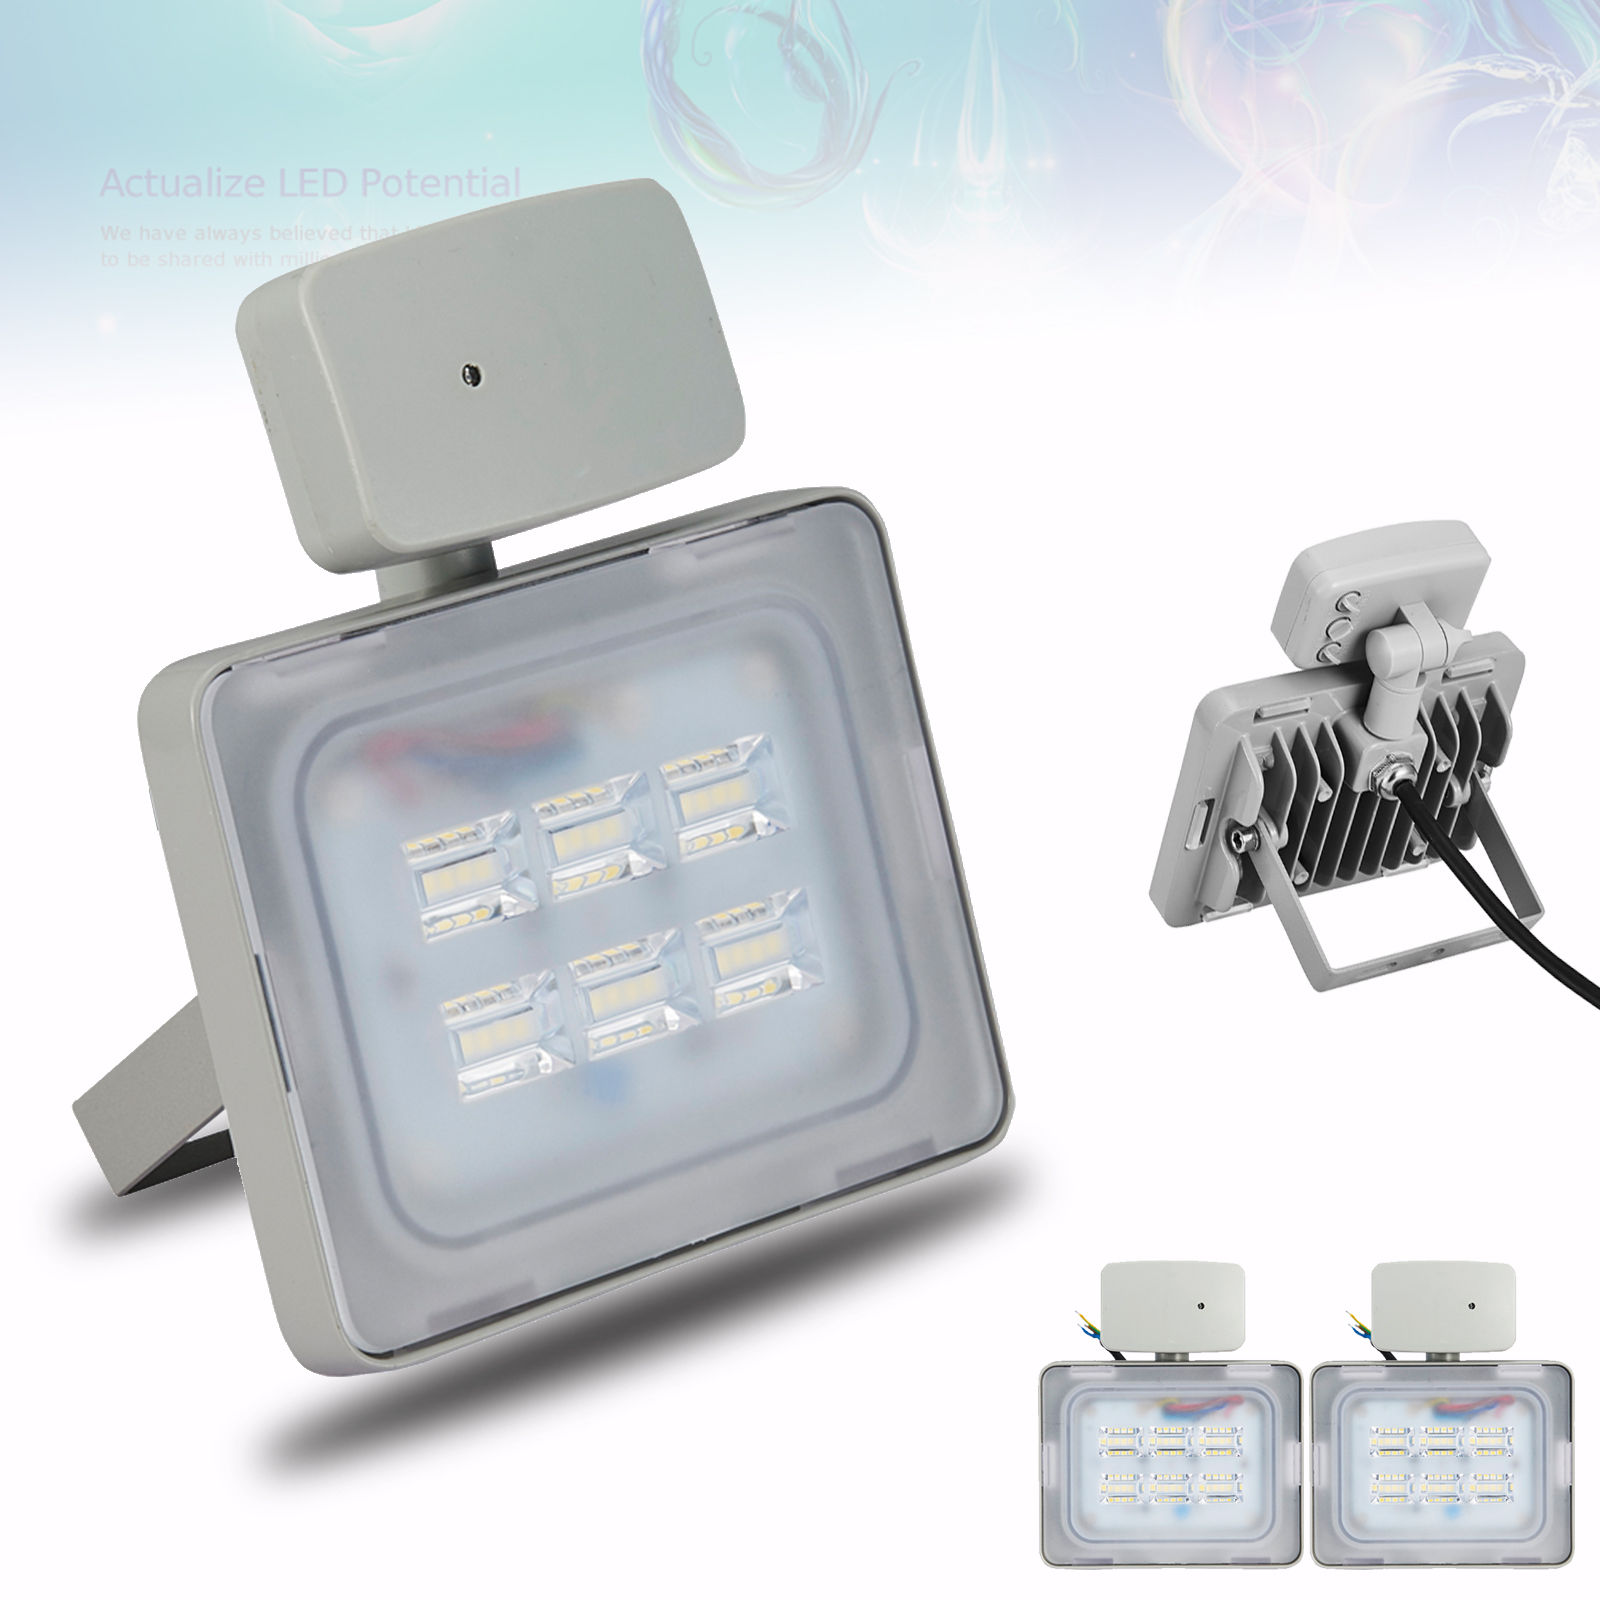 2X Viugreum 20W LED Floodlight Outdoor Garden Lamp Cool White, Microwave Sensor